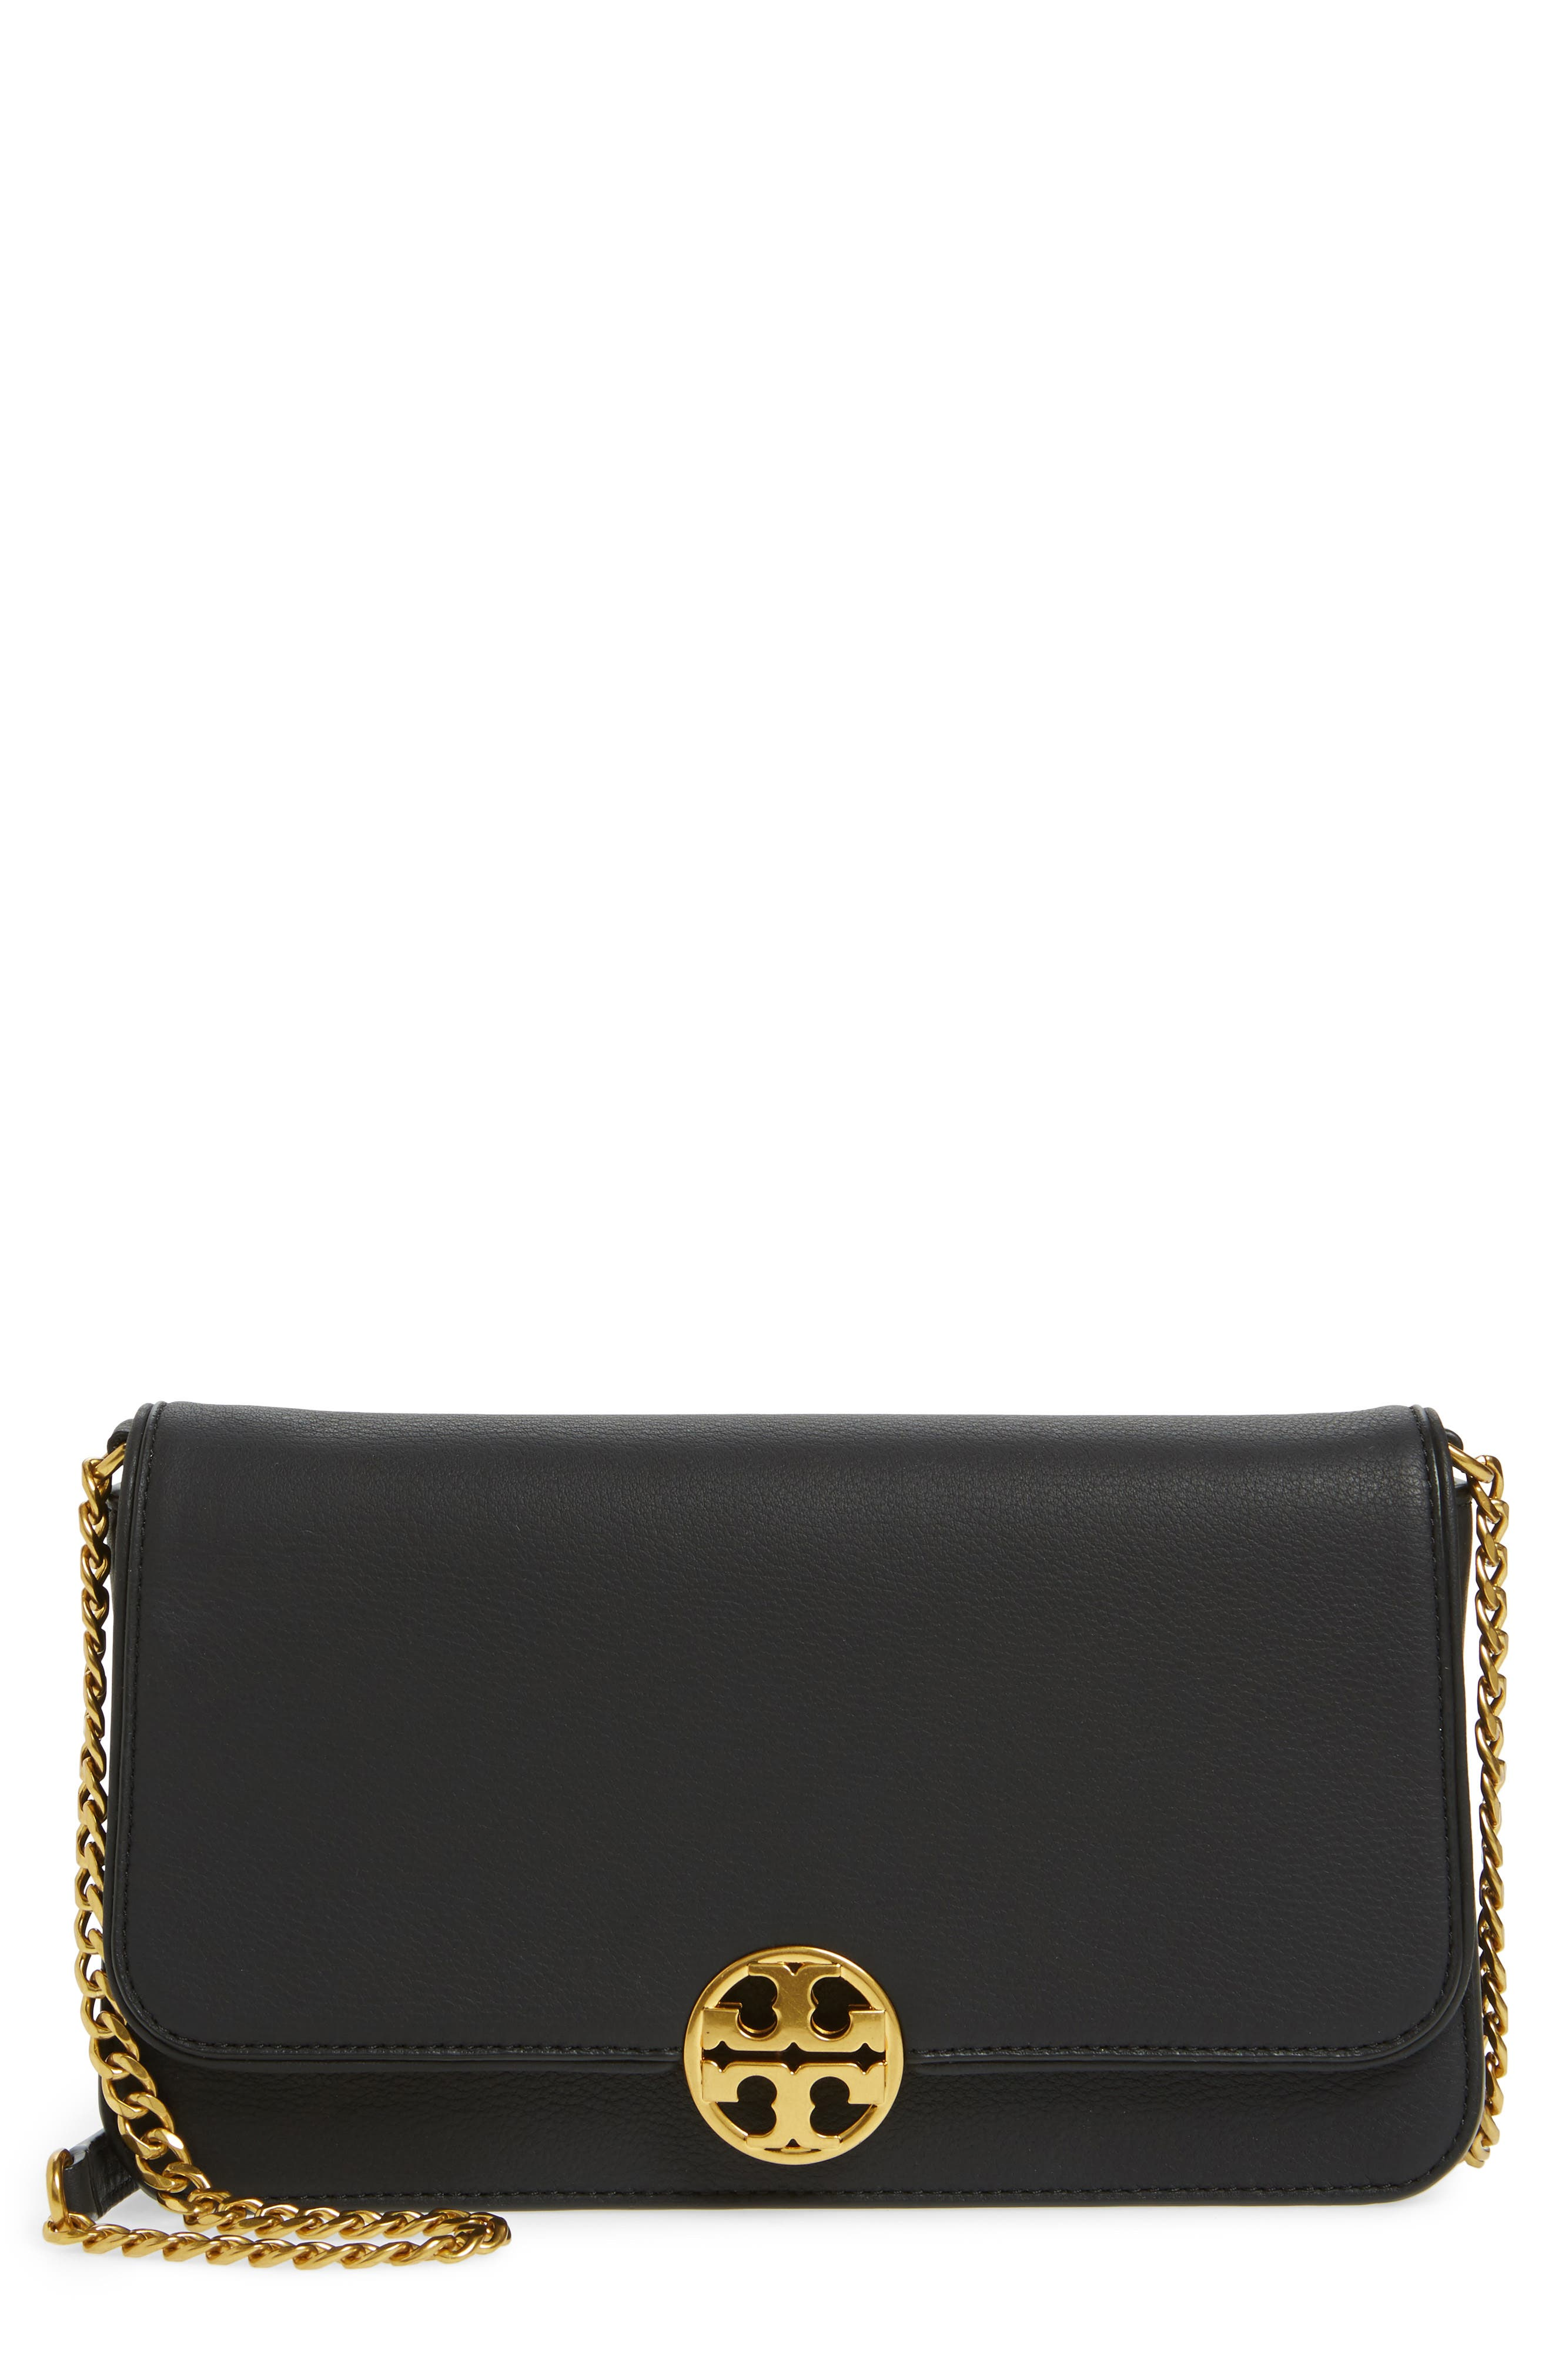 Tory Burch Chelsea Convertible Leather Clutch